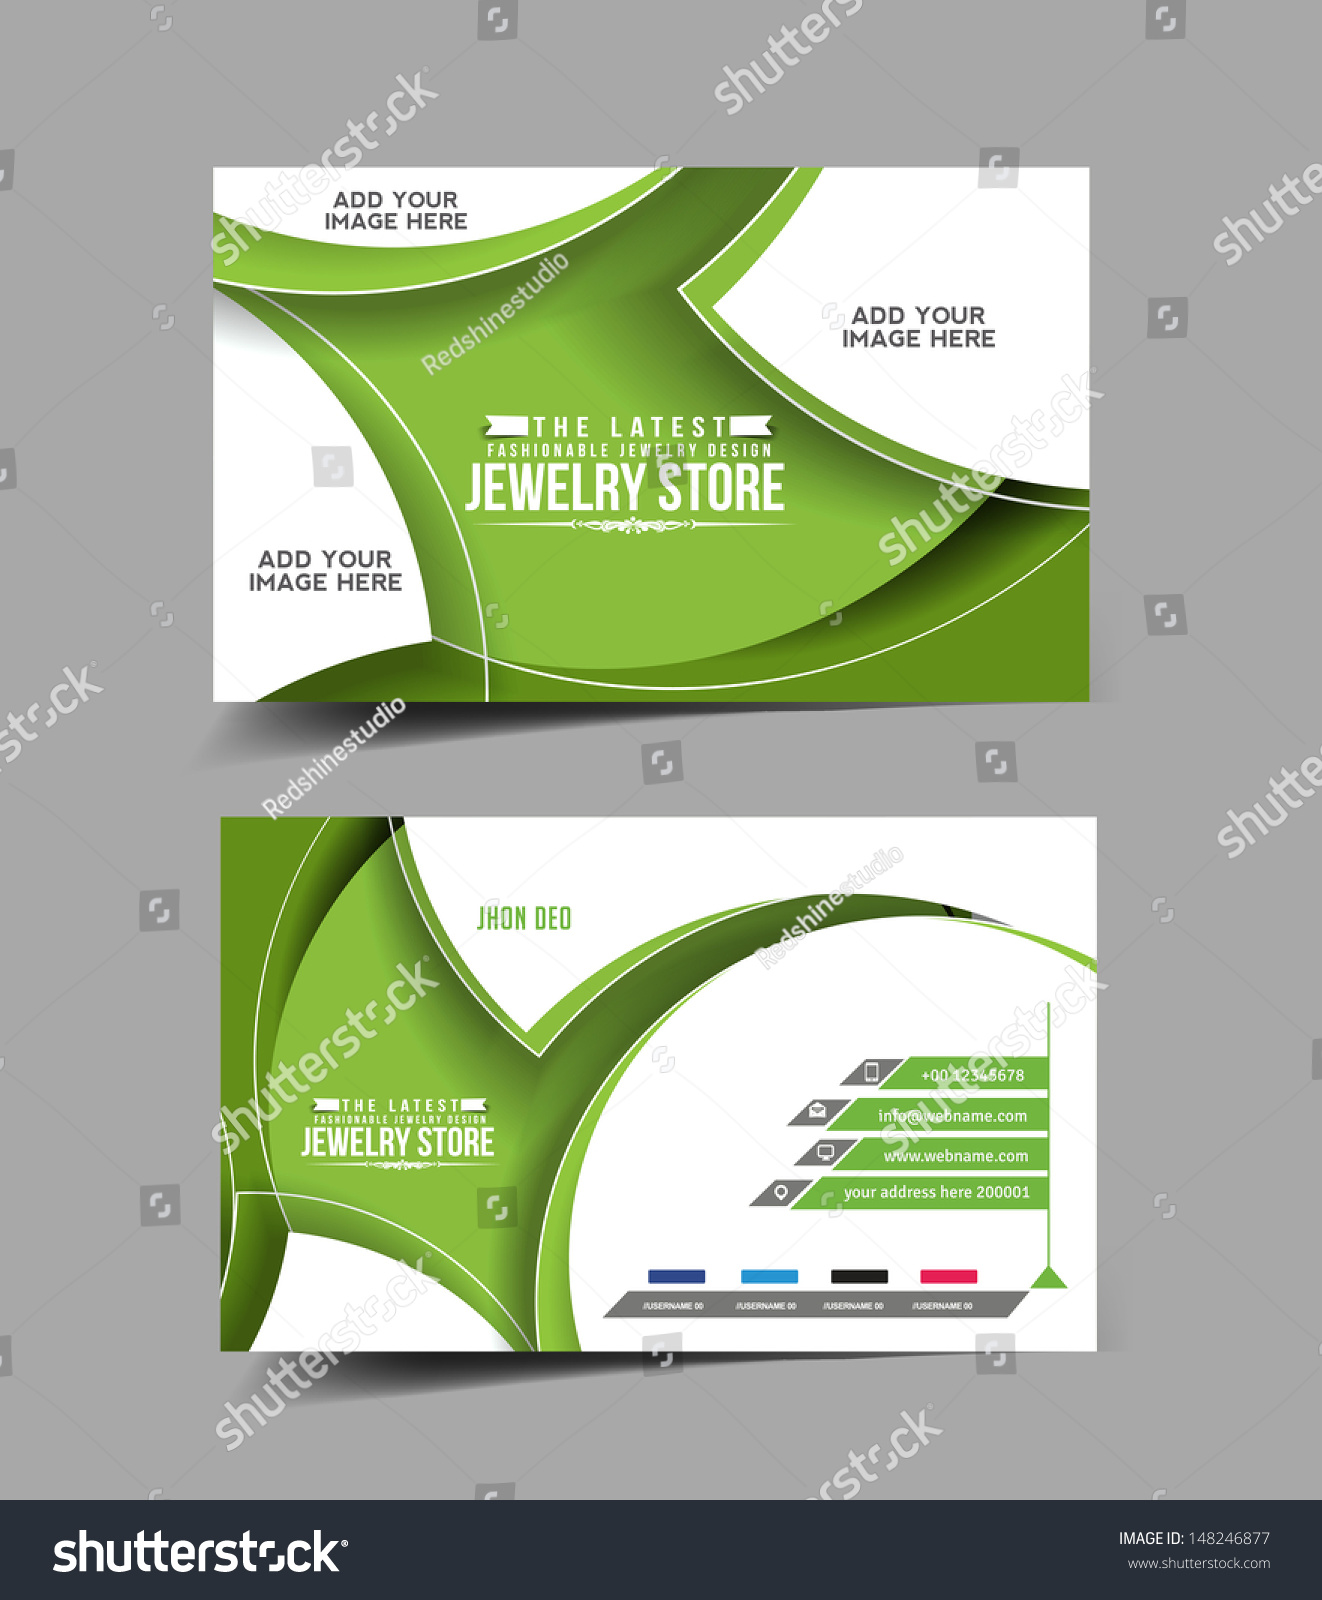 Jewelry Store Business Card Vector Design Stock Vector 148246877 ...